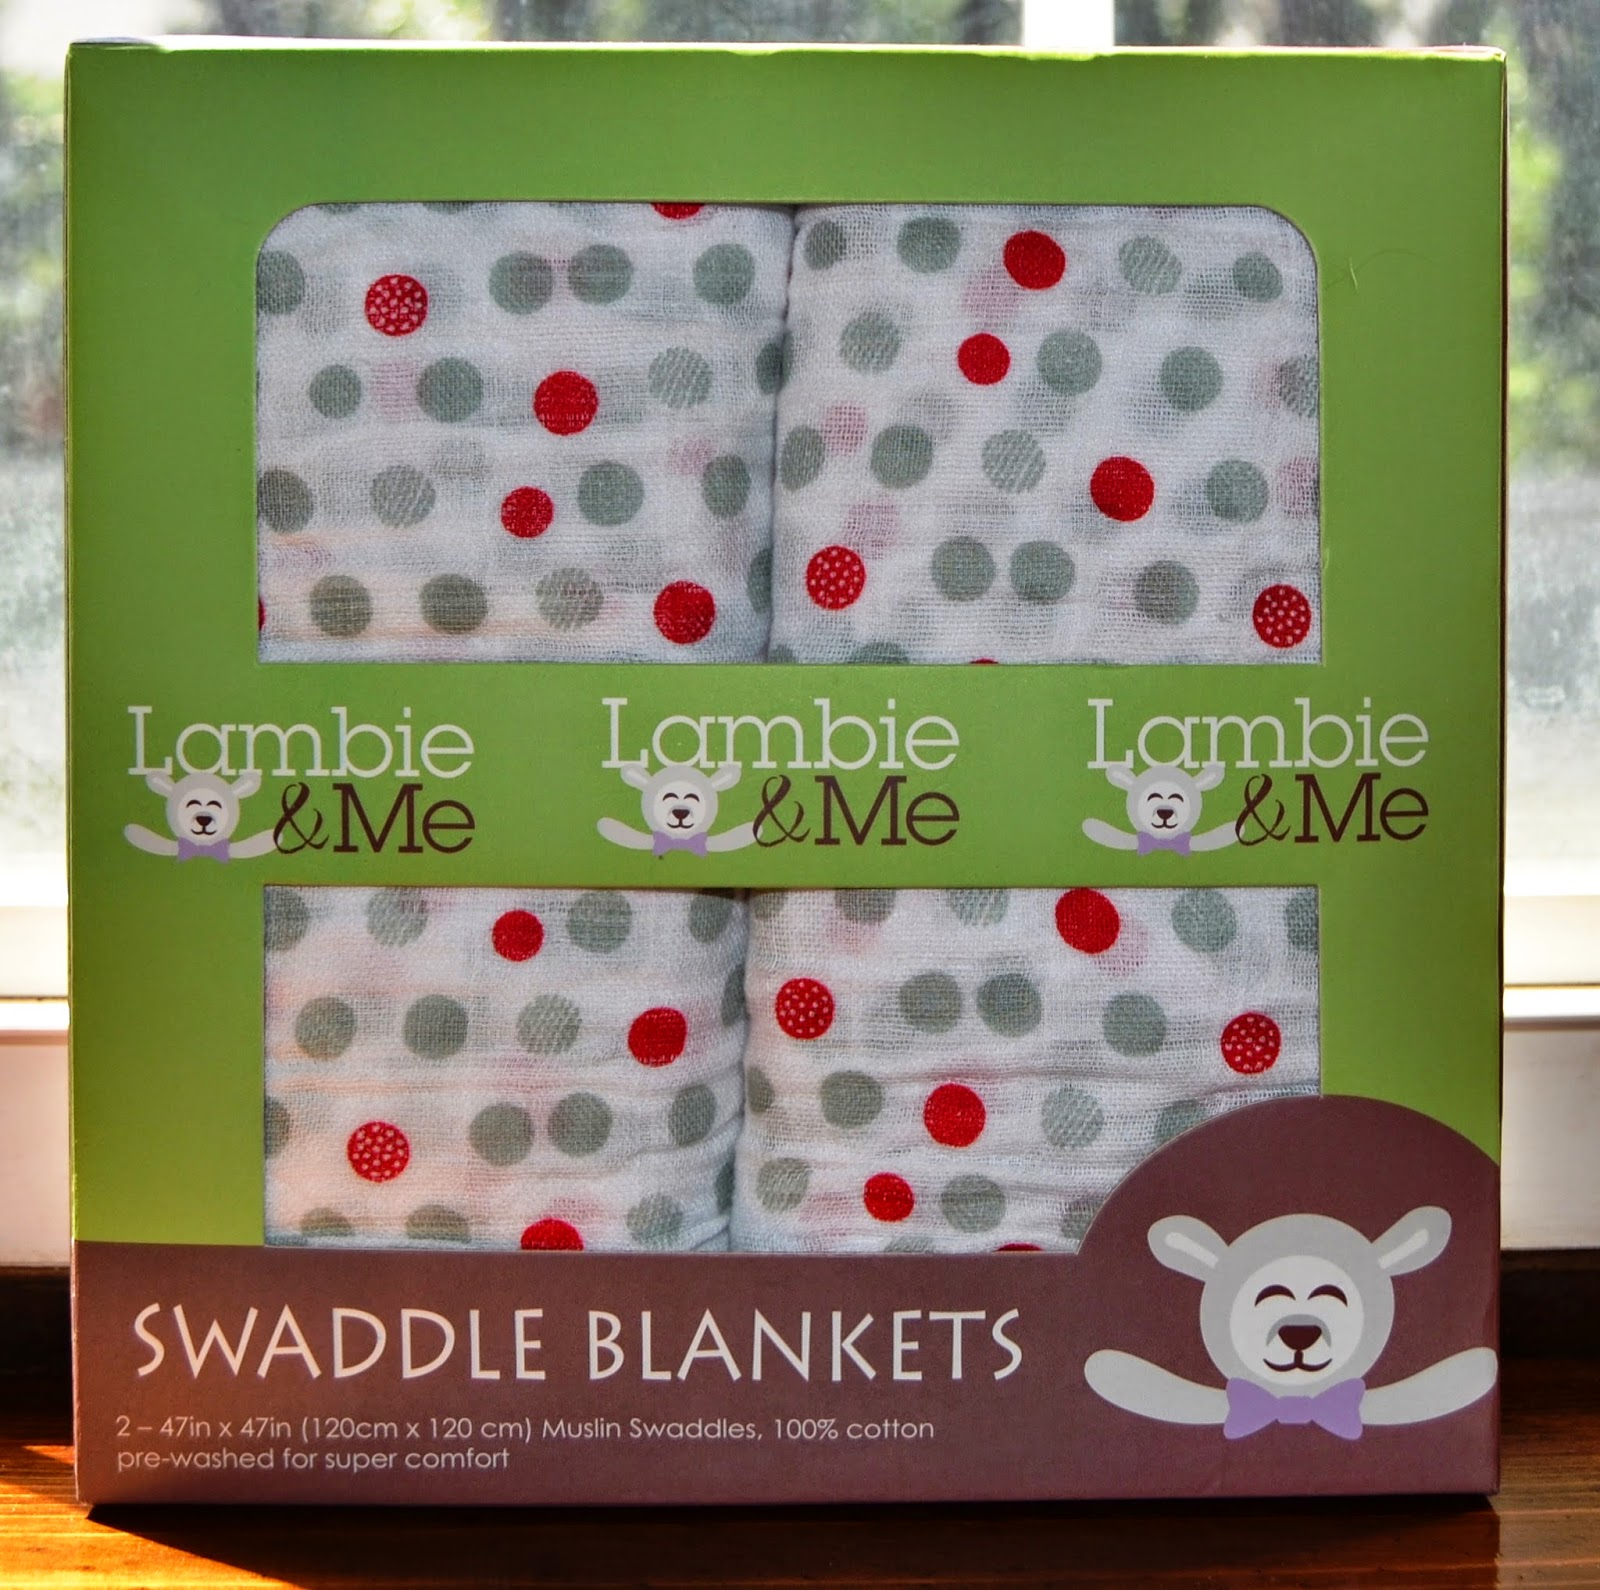 Lambie & Me Organic Swaddle Blankets